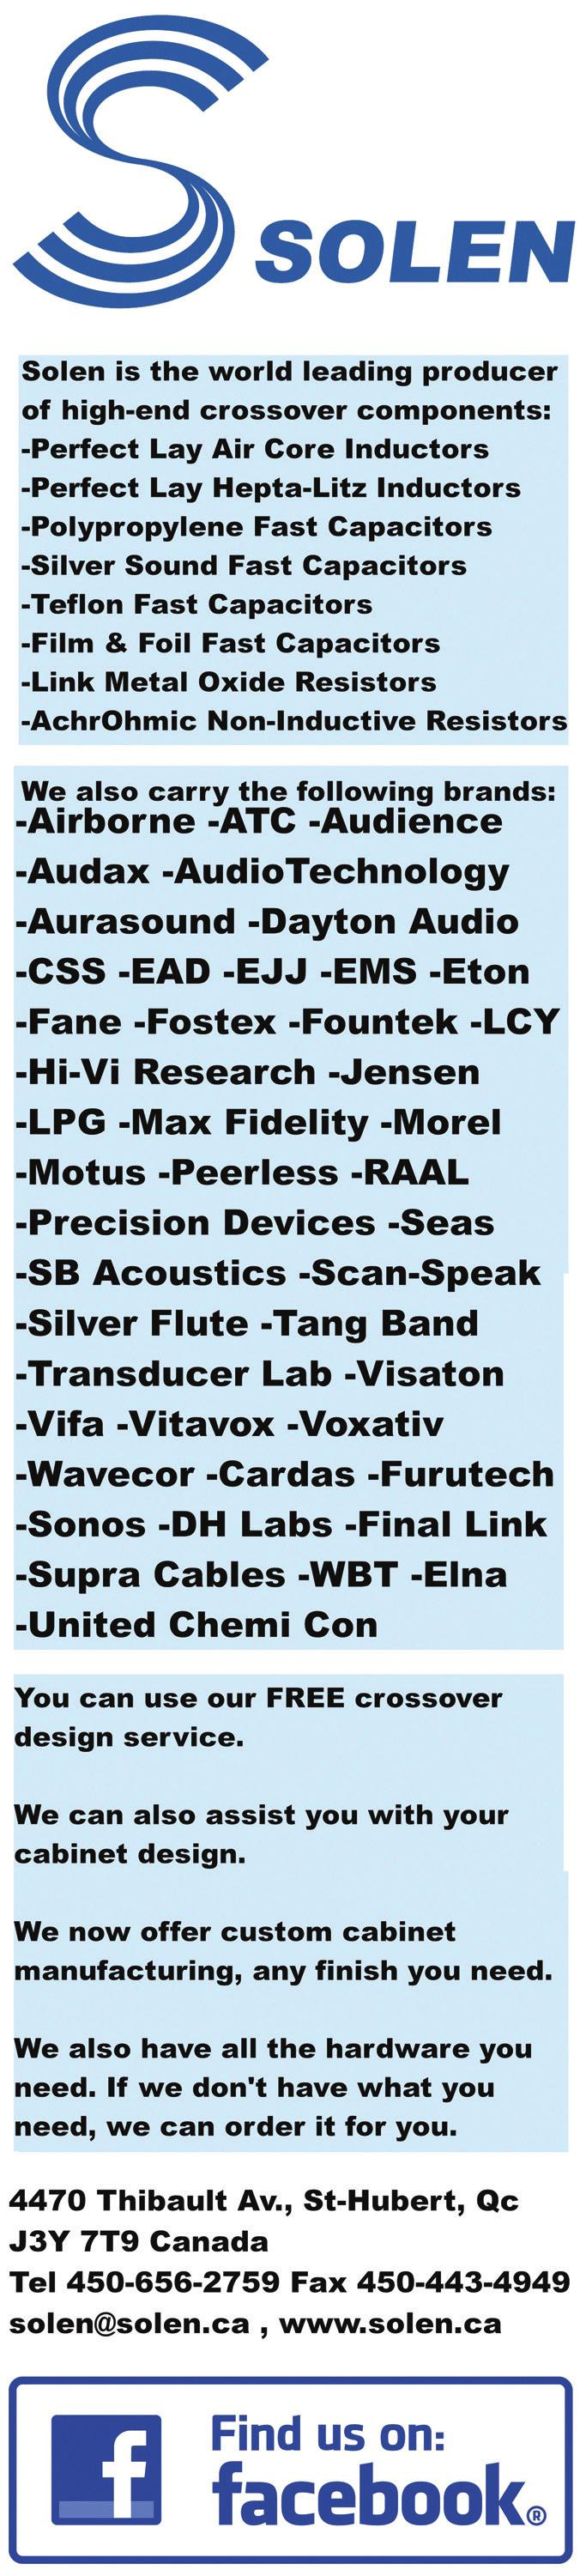 Many Of My Audio Friends And Heroes Would Be There I Michael Pass Labs Aleph5 Classa Diy Amplifier Schematic Pcb About The Author Rothacher Is An Executive For A Us Manufacturing Firm By Day